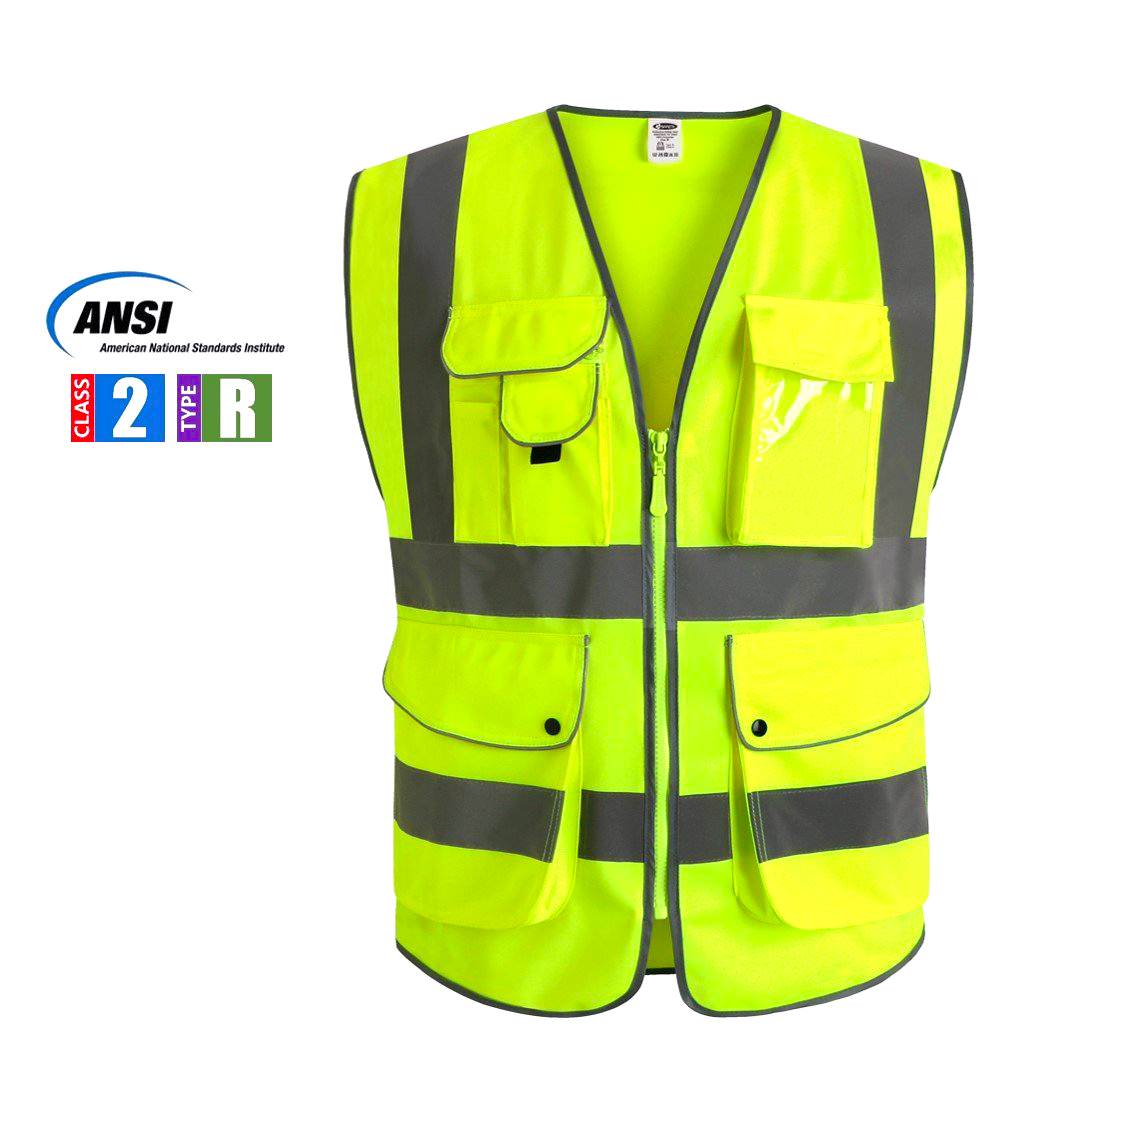 Multiple Pockets Class 2 High Visibility Zipper Front Safety Vest With Reflective Strips, Yellow Meets ANSI/ISEA Standards (Medium)